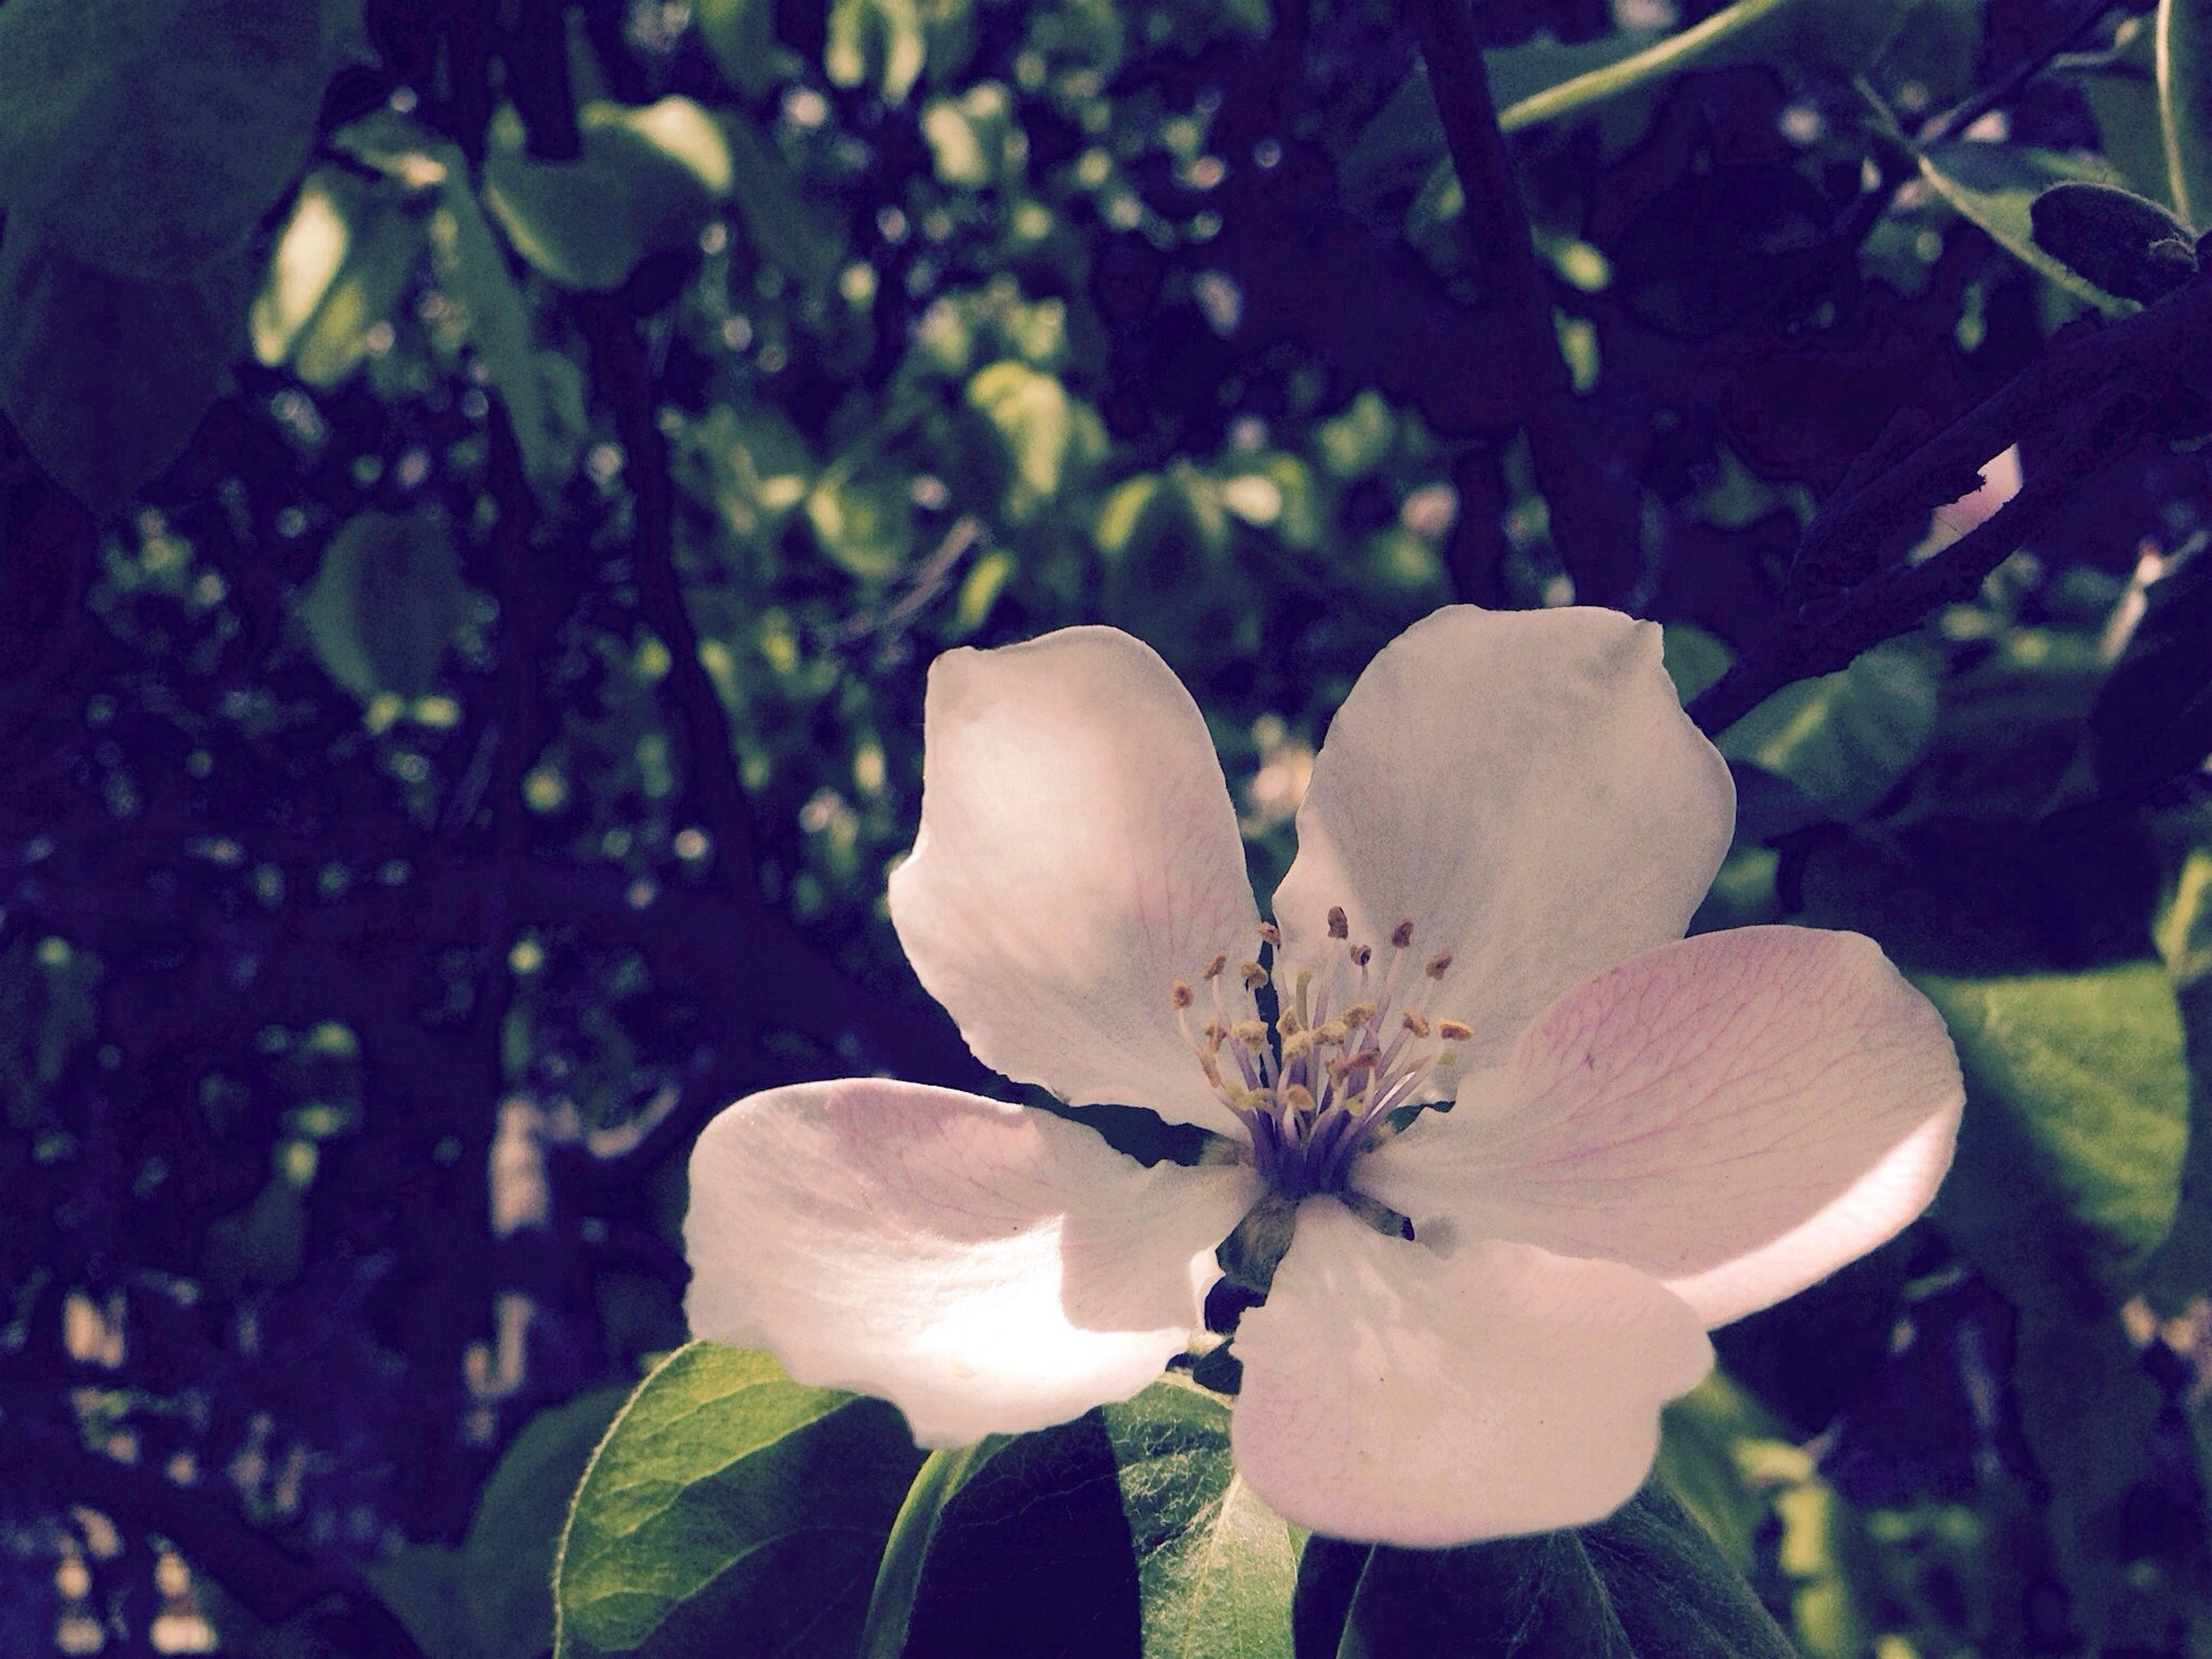 flower, petal, fragility, growth, freshness, flower head, close-up, focus on foreground, beauty in nature, nature, plant, blooming, white color, leaf, in bloom, stamen, single flower, day, outdoors, blossom